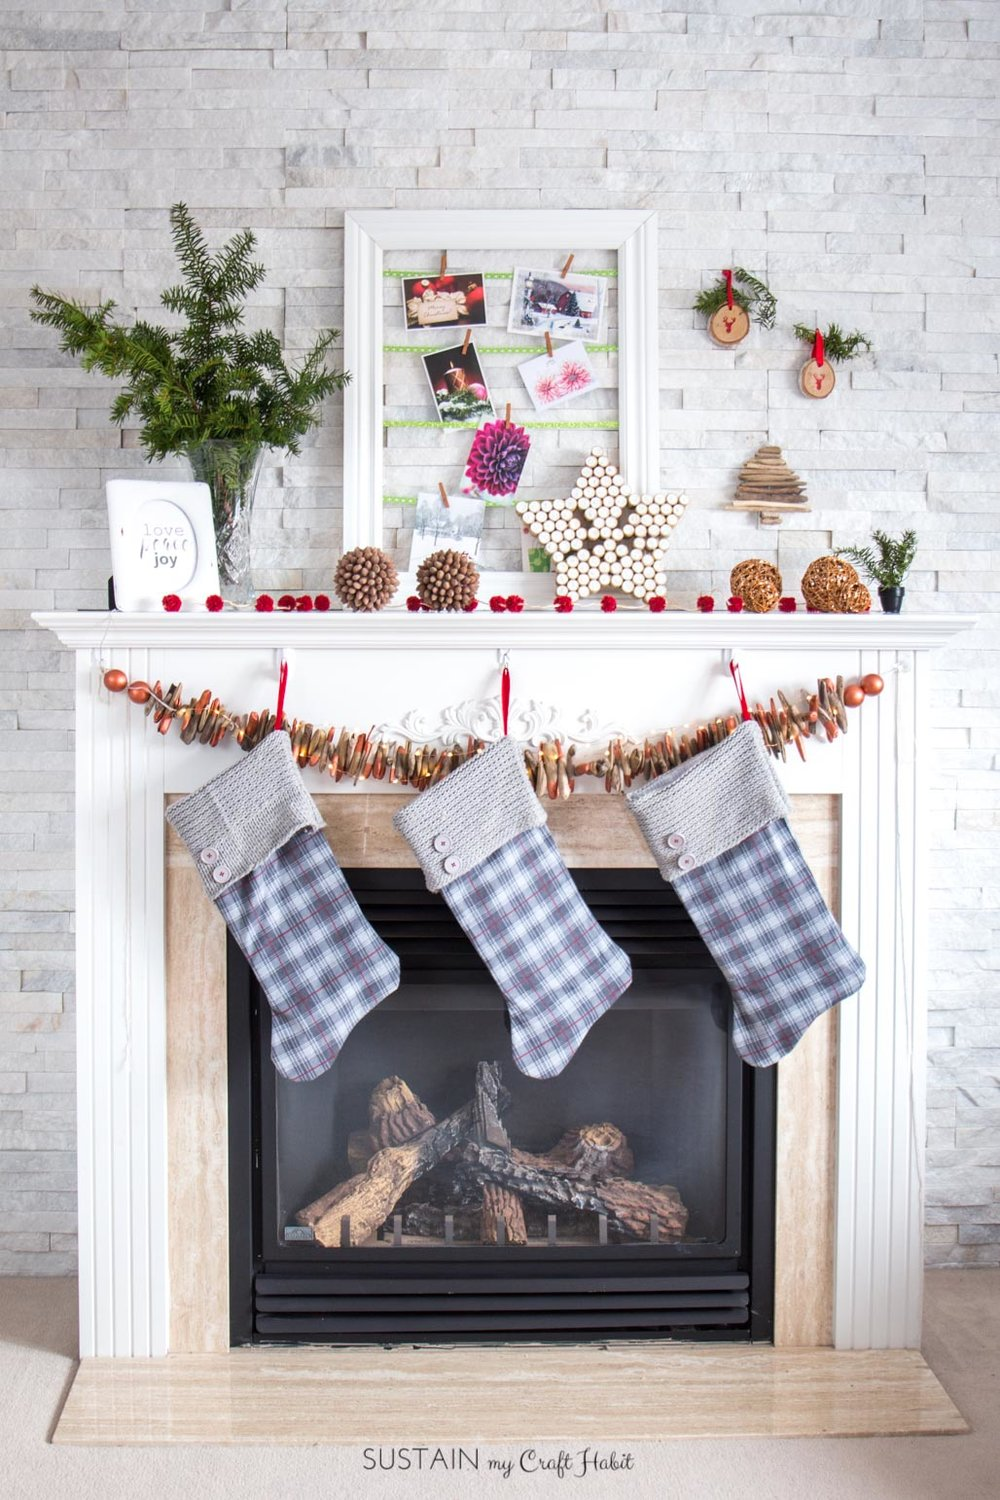 Can't believe all the DIY ideas on this rustic Christmas mantel!